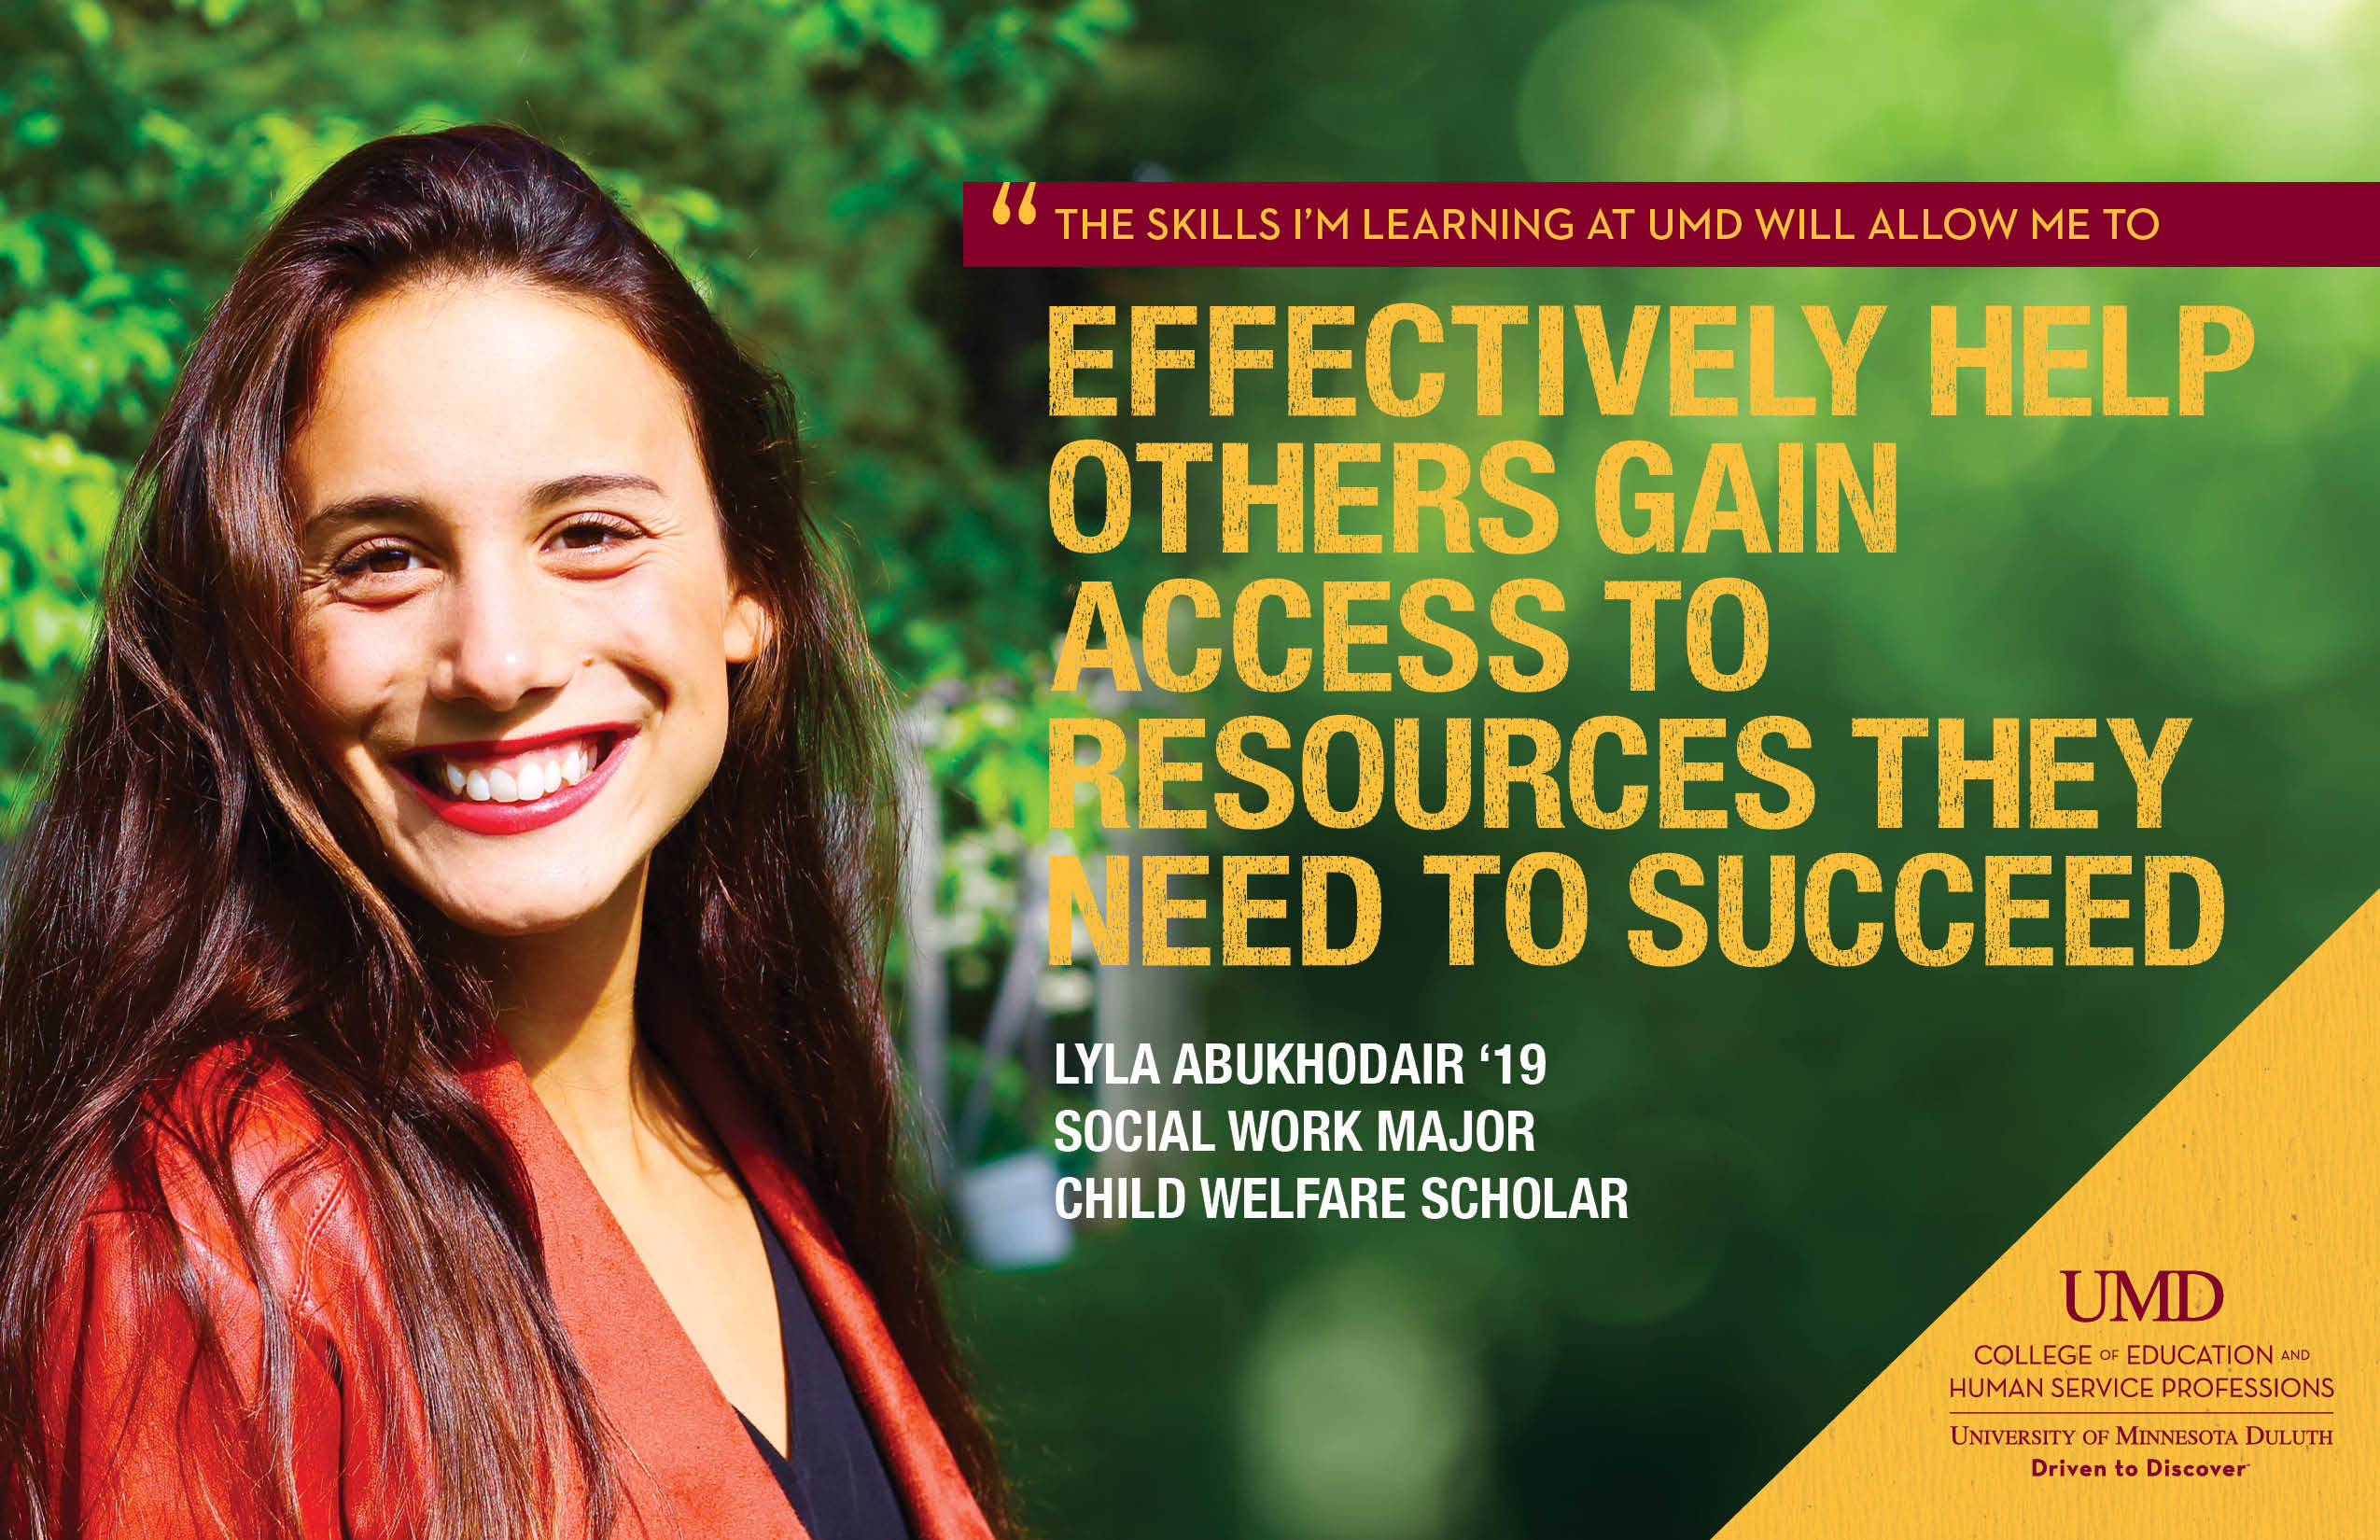 """The skills I'm learning at UMD will allow me to effectively help others gain access to access to resources they need to succeed."" Lyla Abukhodair, Social Work Major, Child Welfare Scholar"